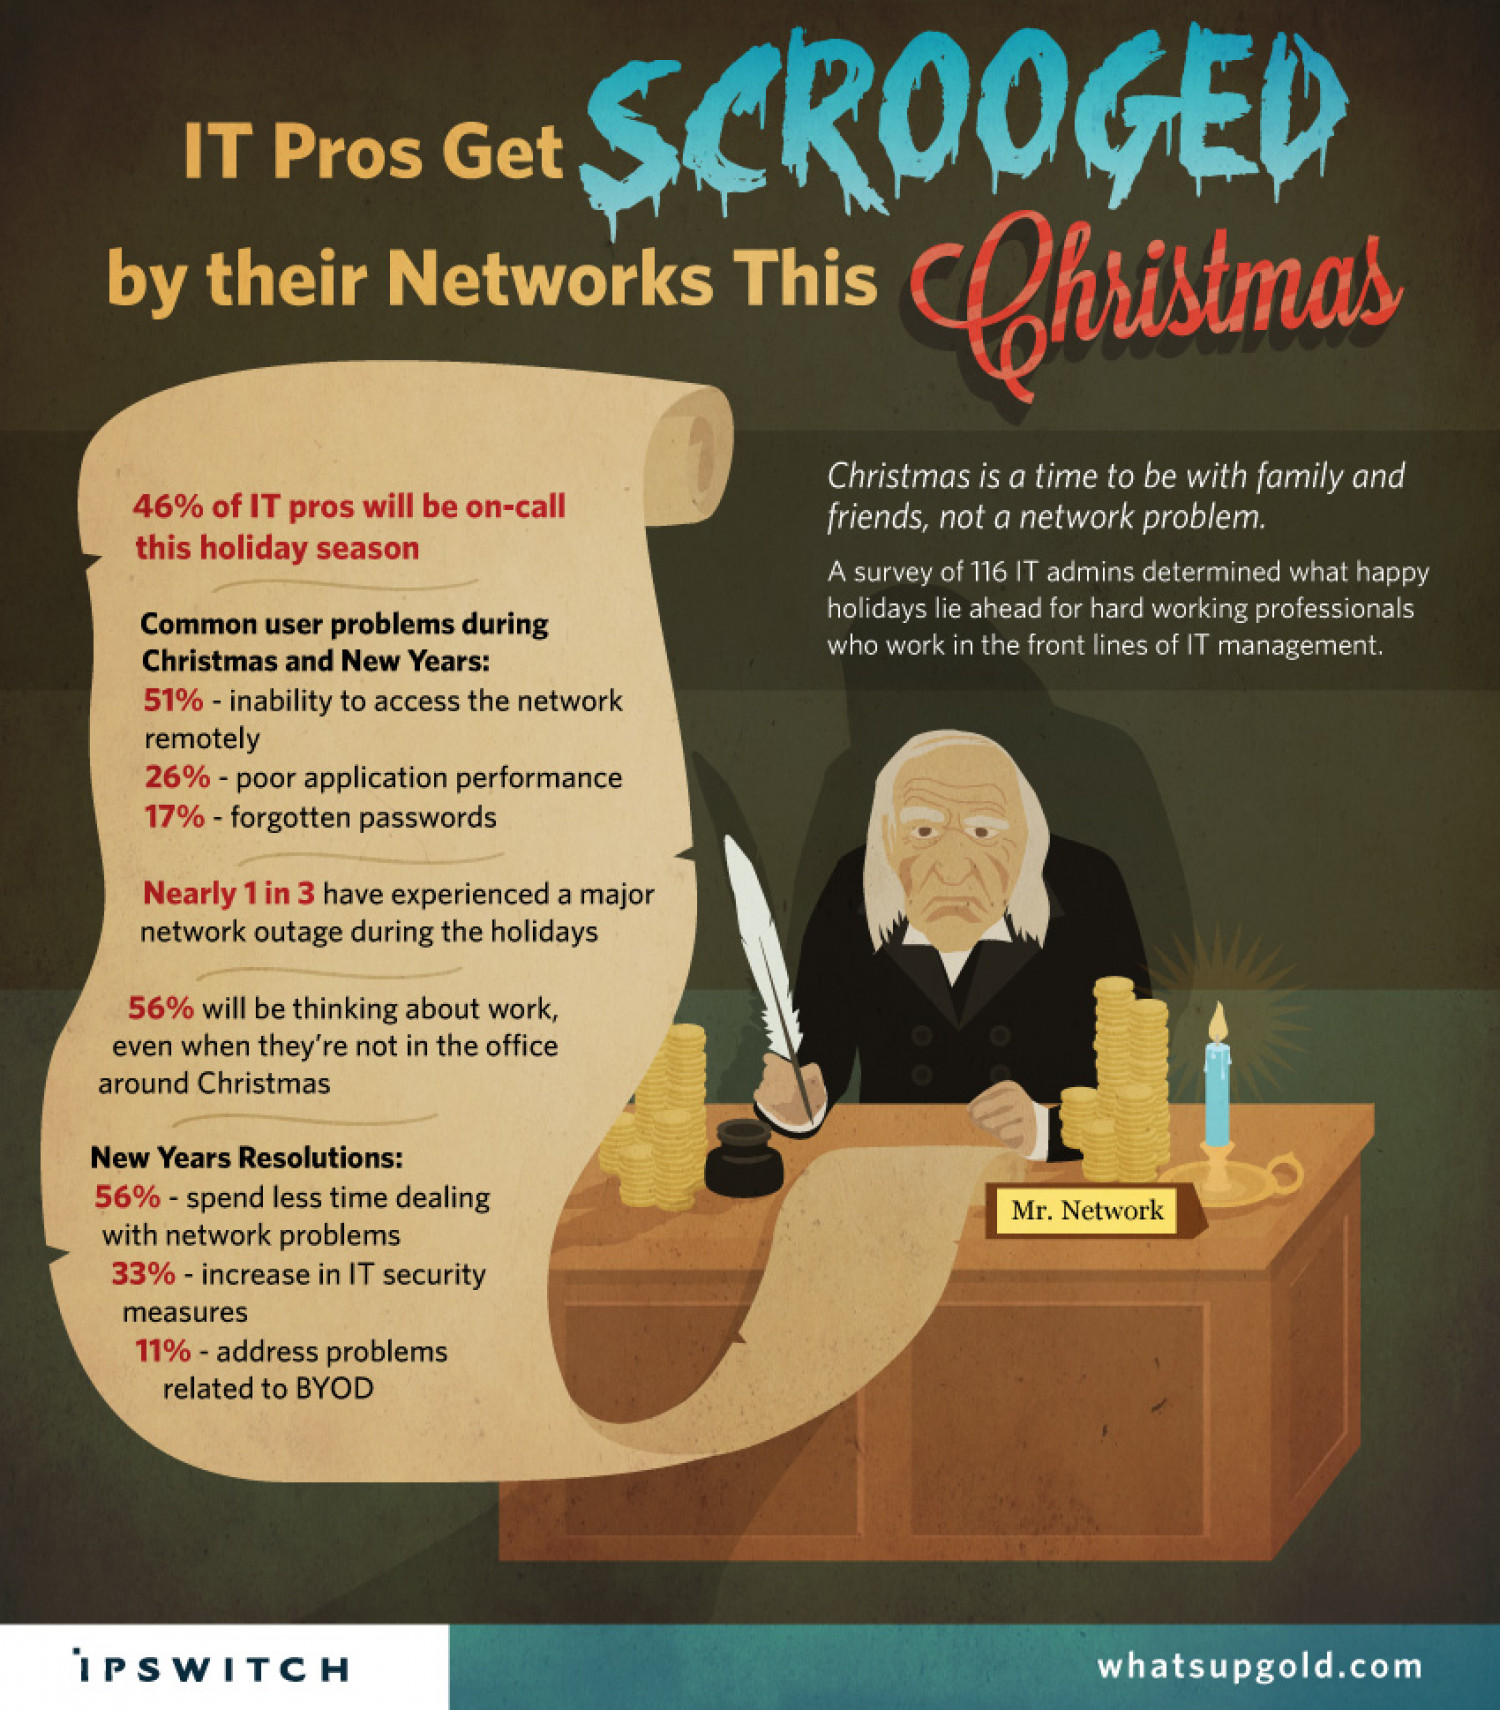 IT Pros Get Scrooged by their Networks This Christmas Infographic